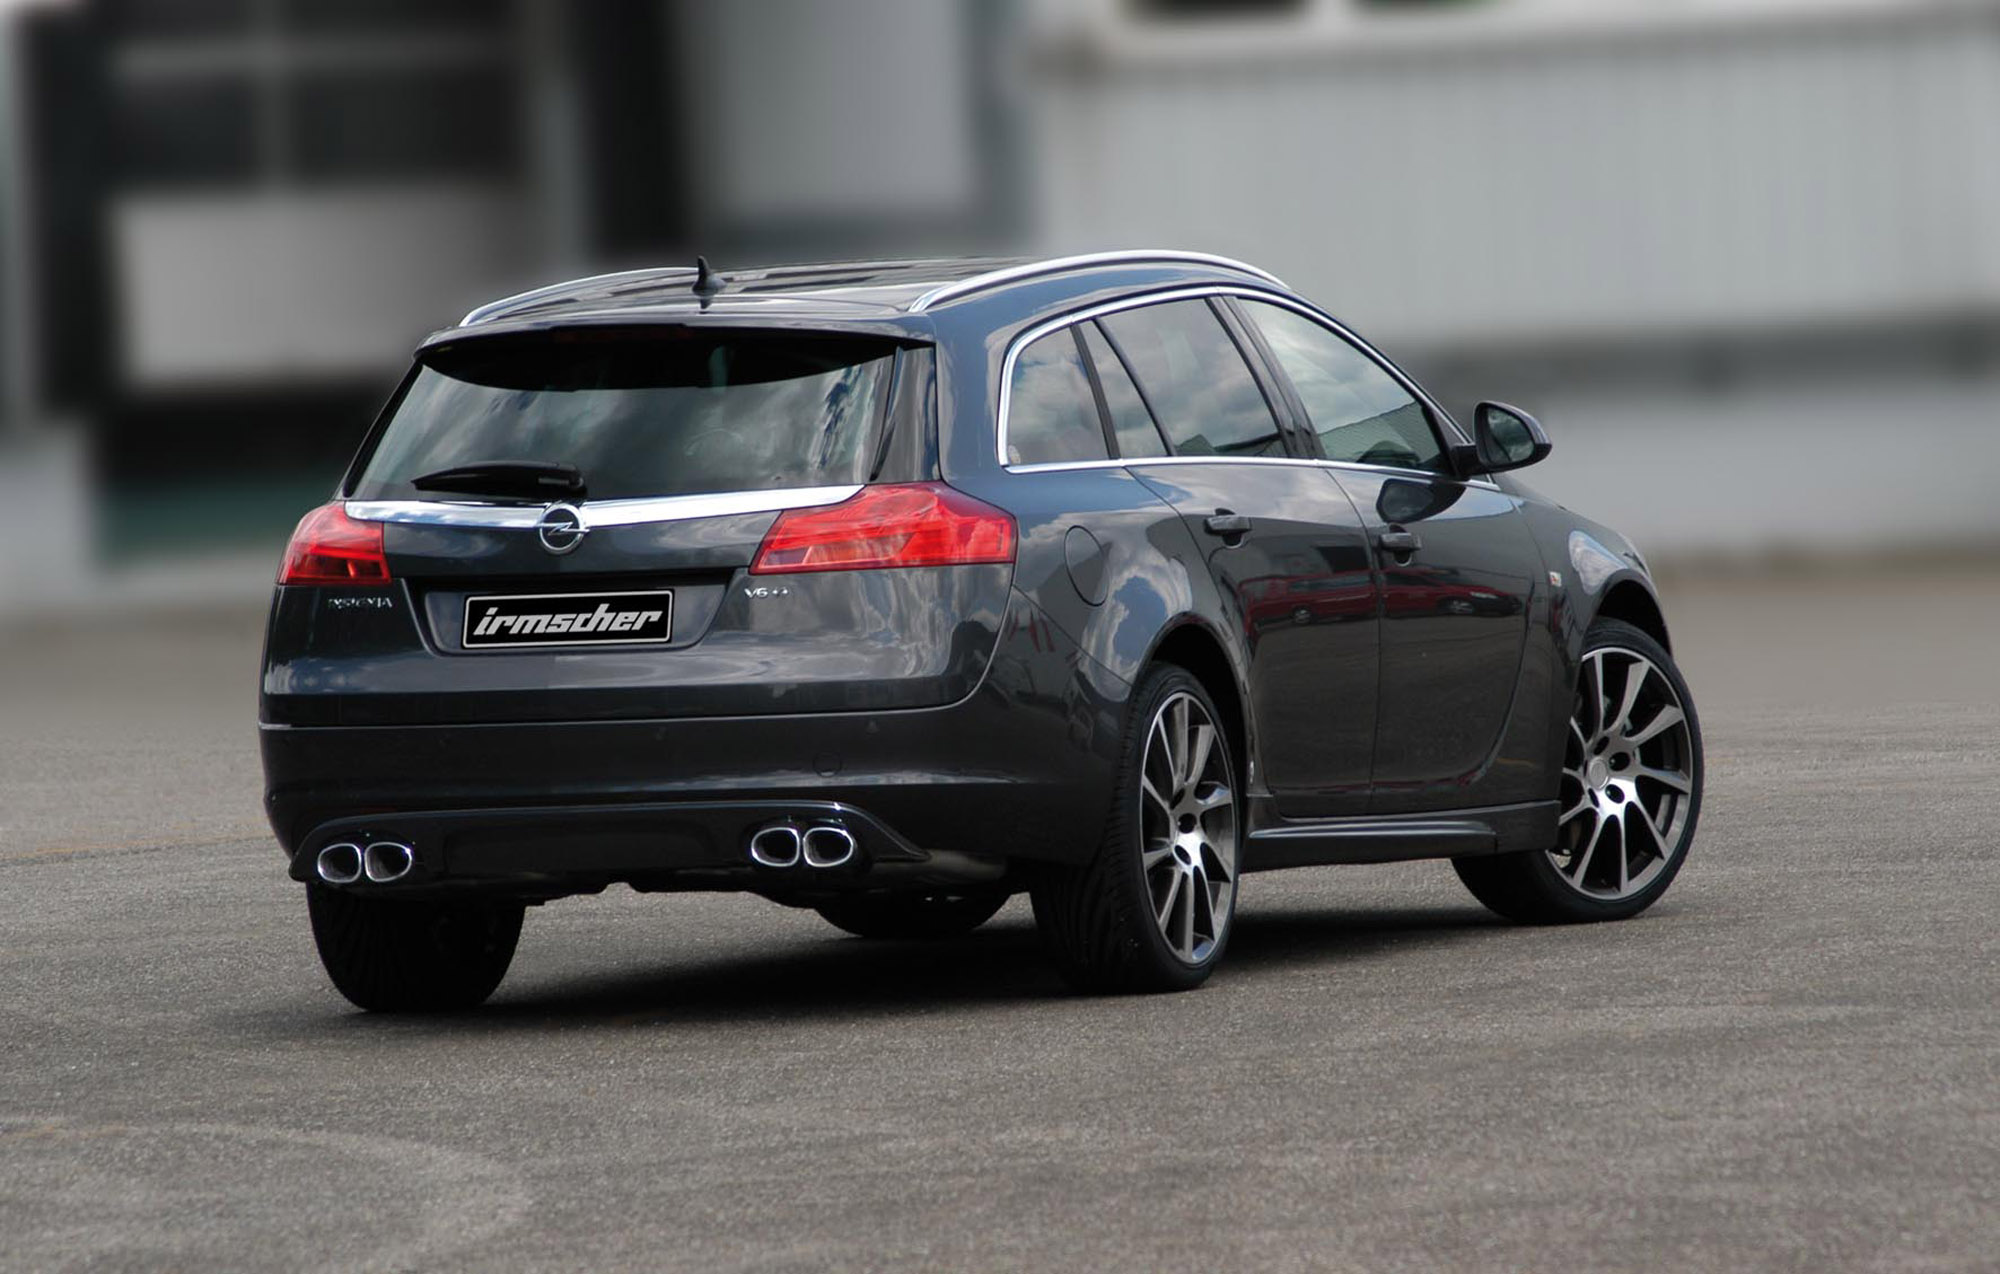 irmscher opel insignia sports tourer - picture 32578